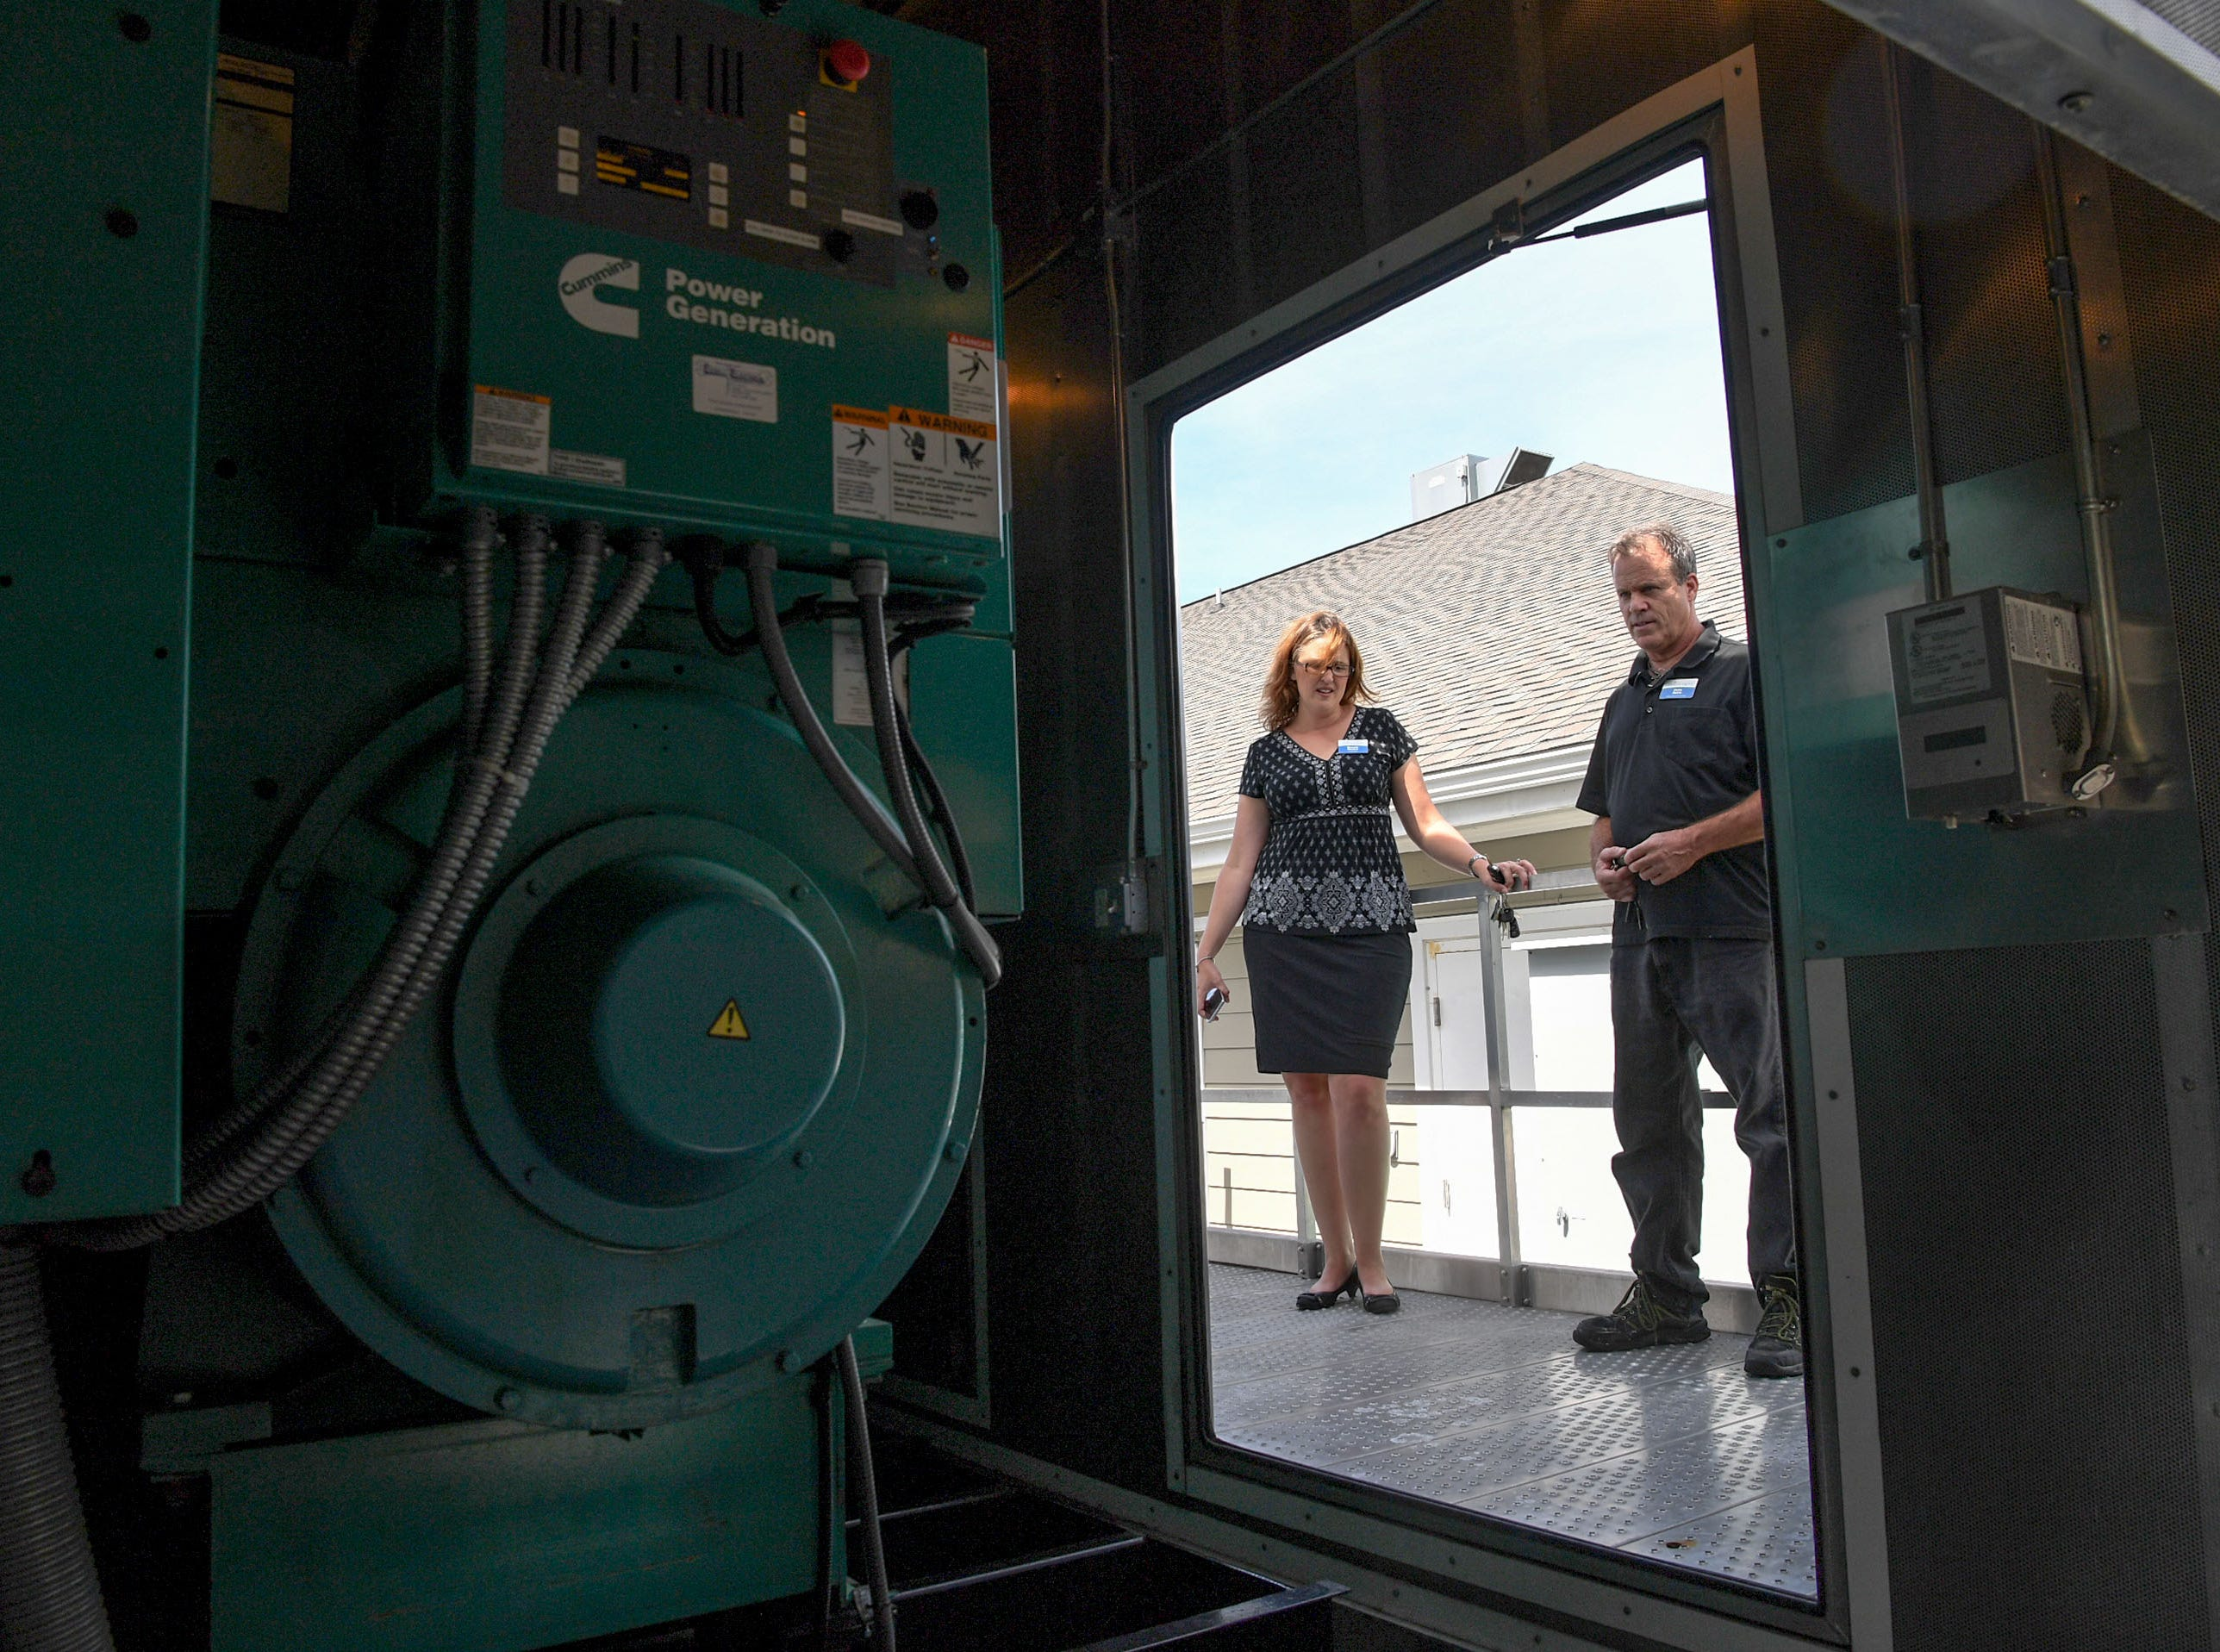 Bonnie Skobel, left, an administrator at the Trinity Grove Nursing Home in Wilmington, North Carolina, looks at a 750 Kilowatt generator with Pete Nero, the director of facilities, on Wednesday. Hurricane Florence is expected to reach Wilmington on Thursday night and Skobel said the home is ready for it. (Ken Ruinard / Greenville News / Gannett USA Today Network / 2018 )